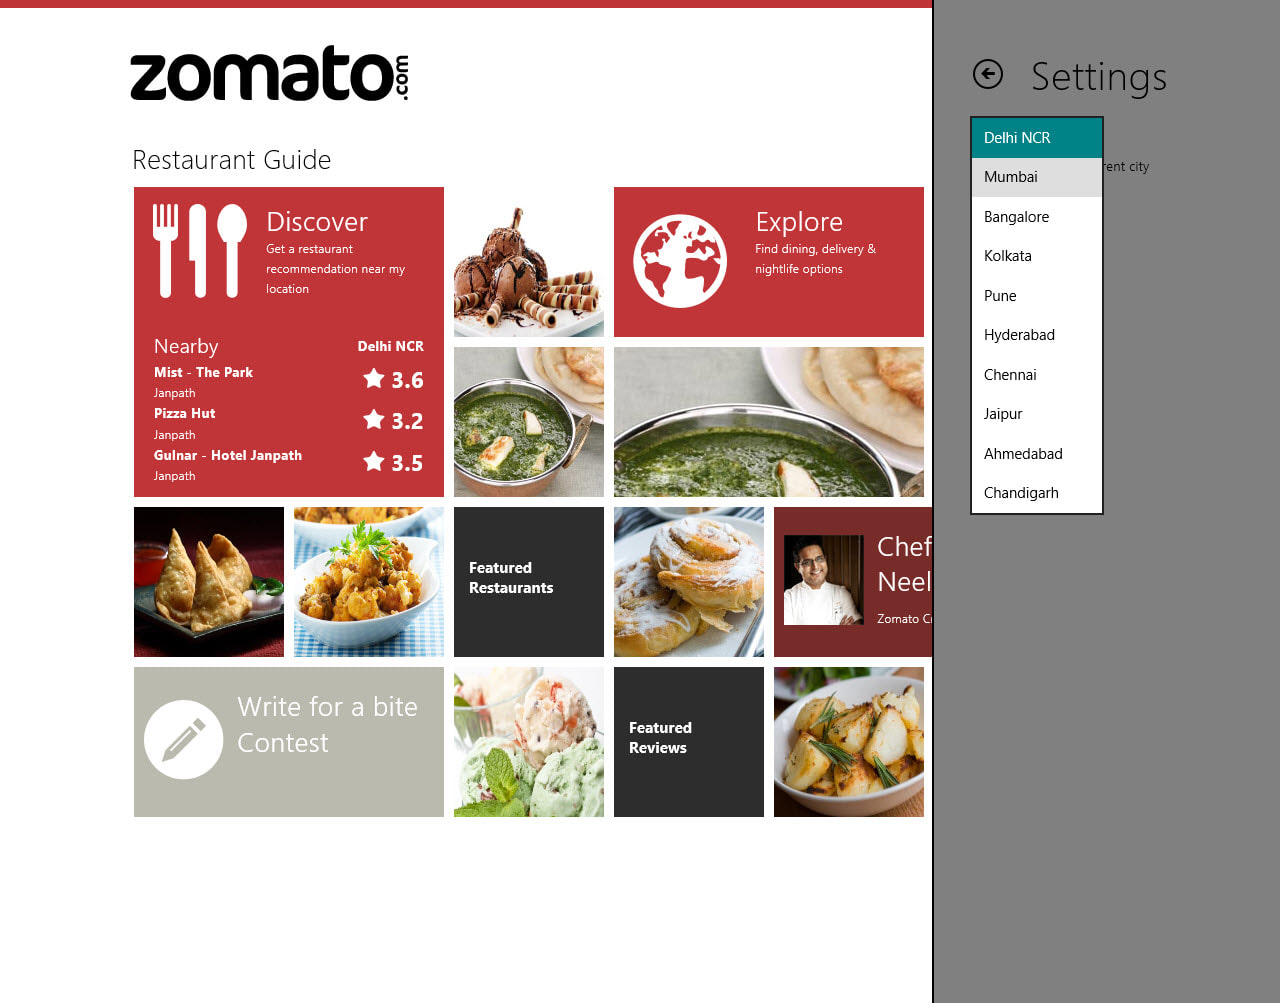 Zomato for Windows 10